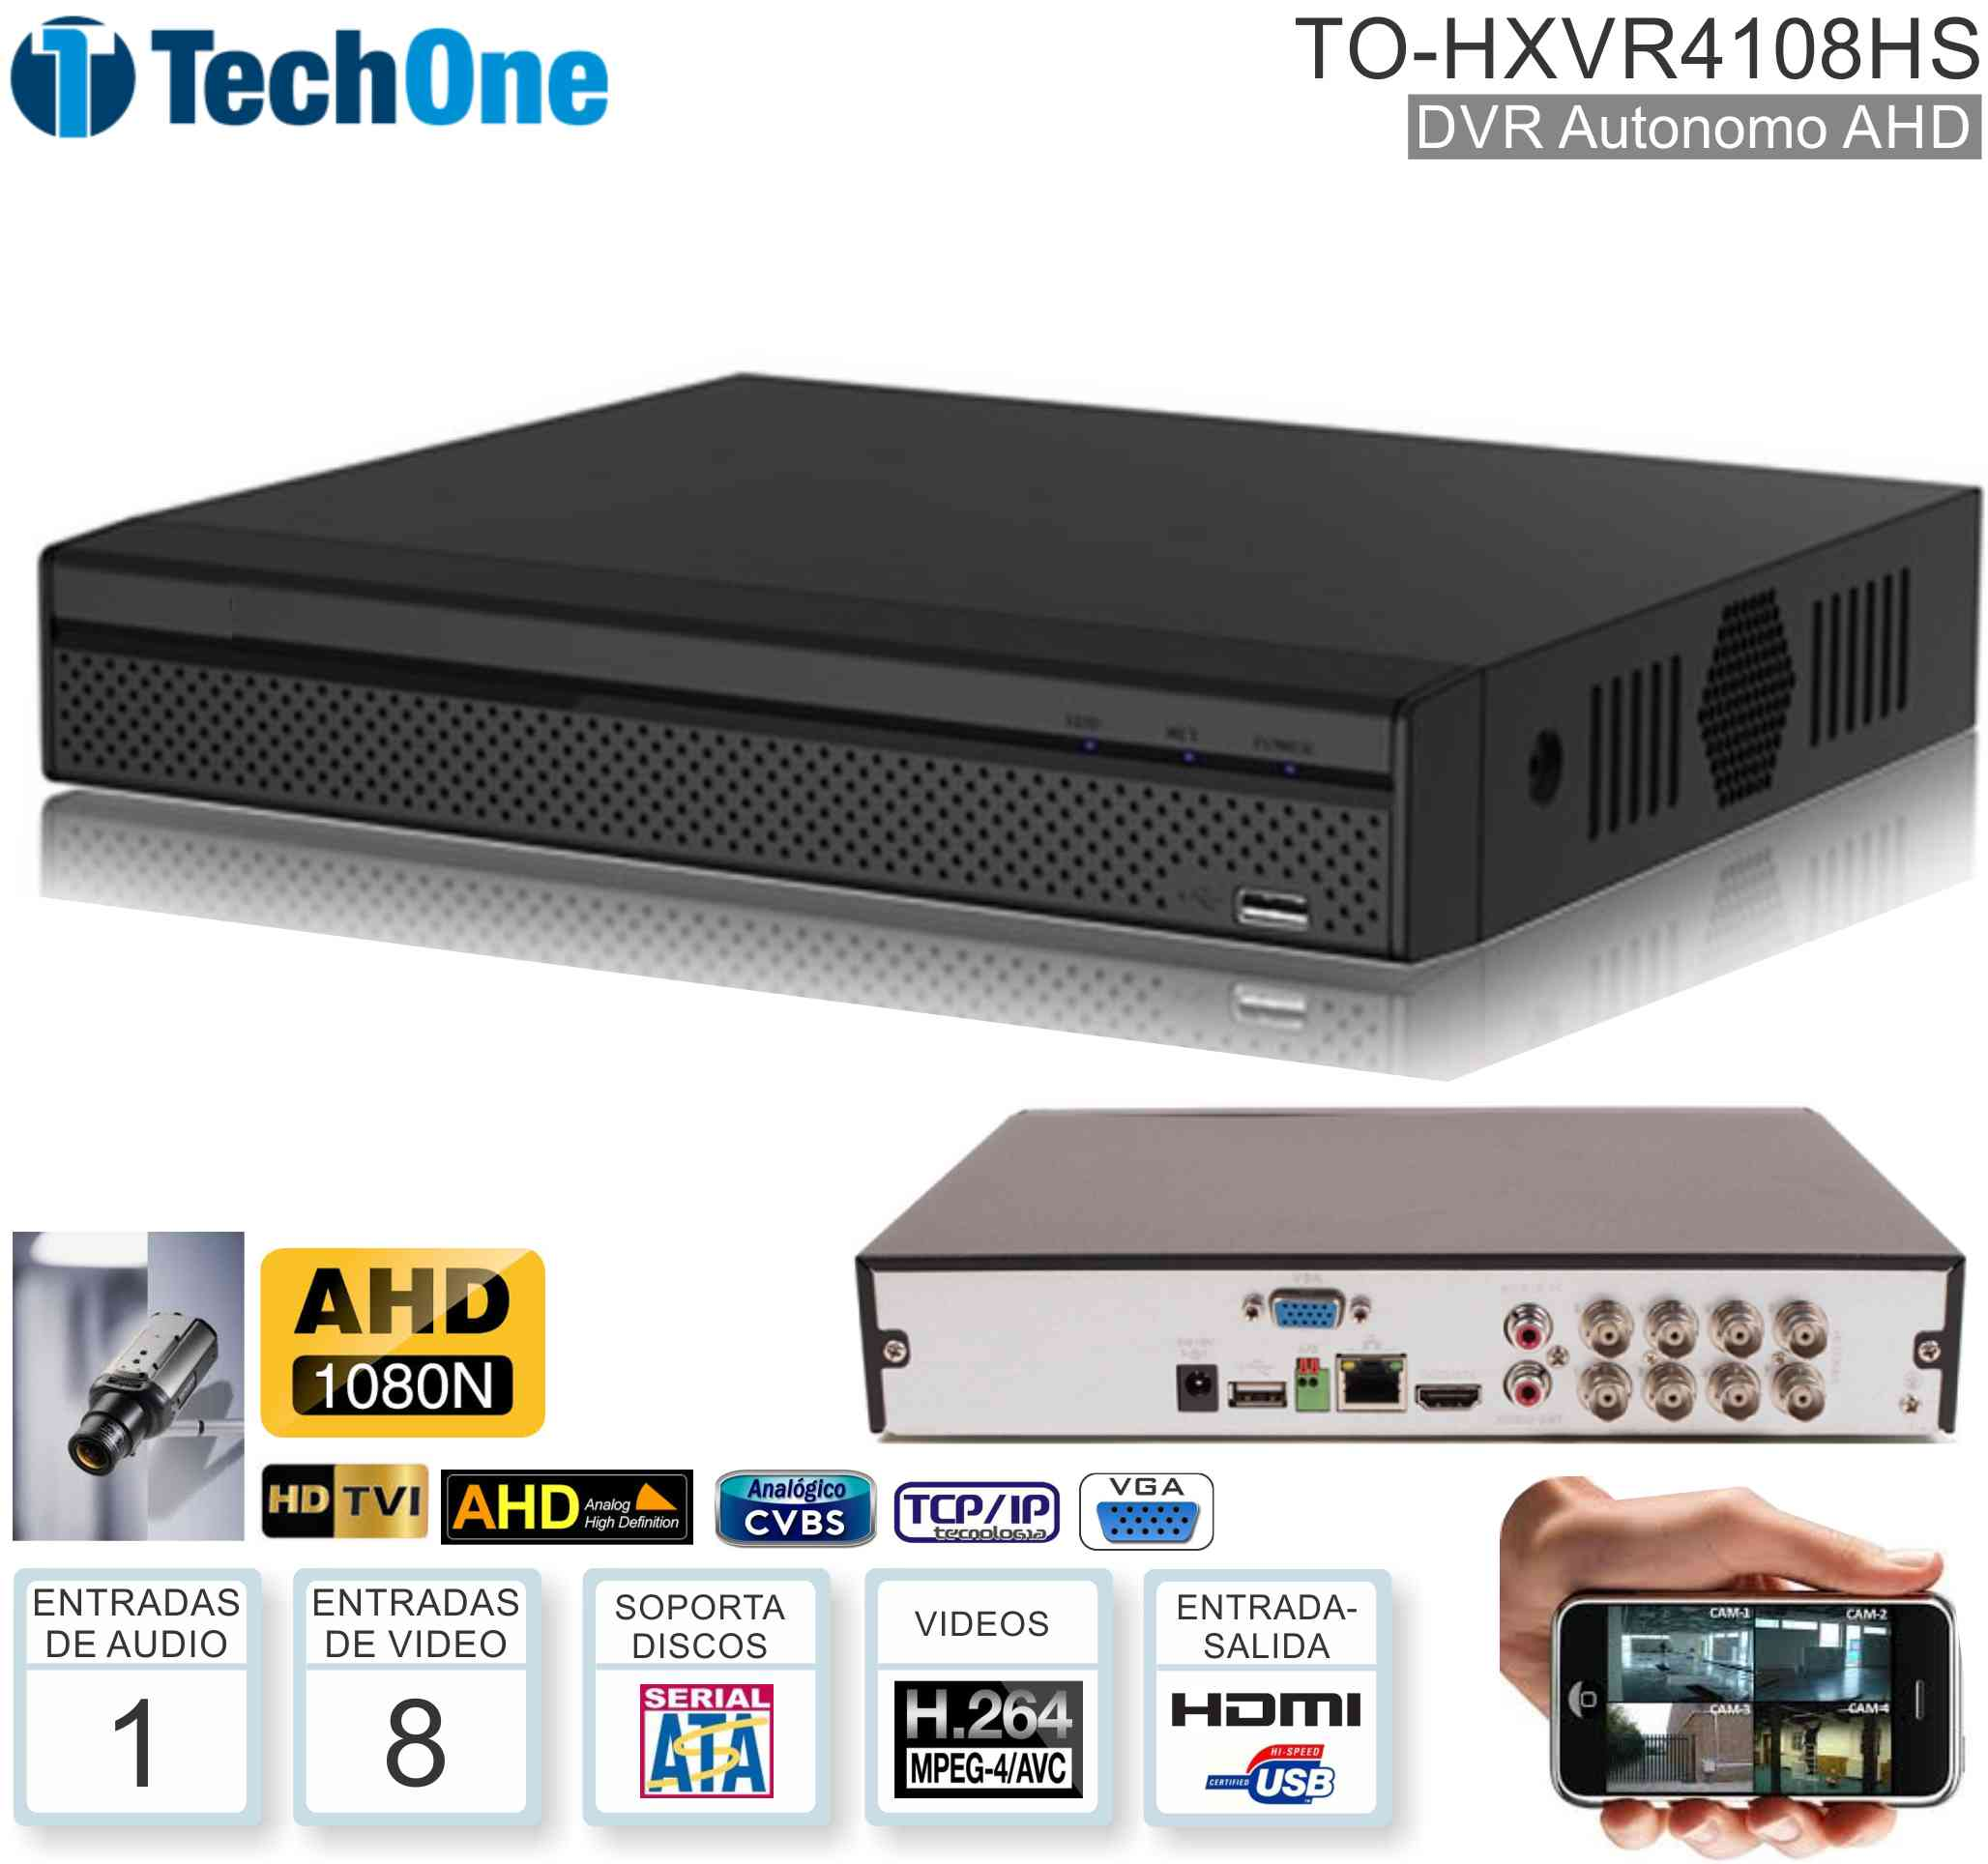 DVR AHD1080 08 Can TECHONE TO-HXVR4108HS